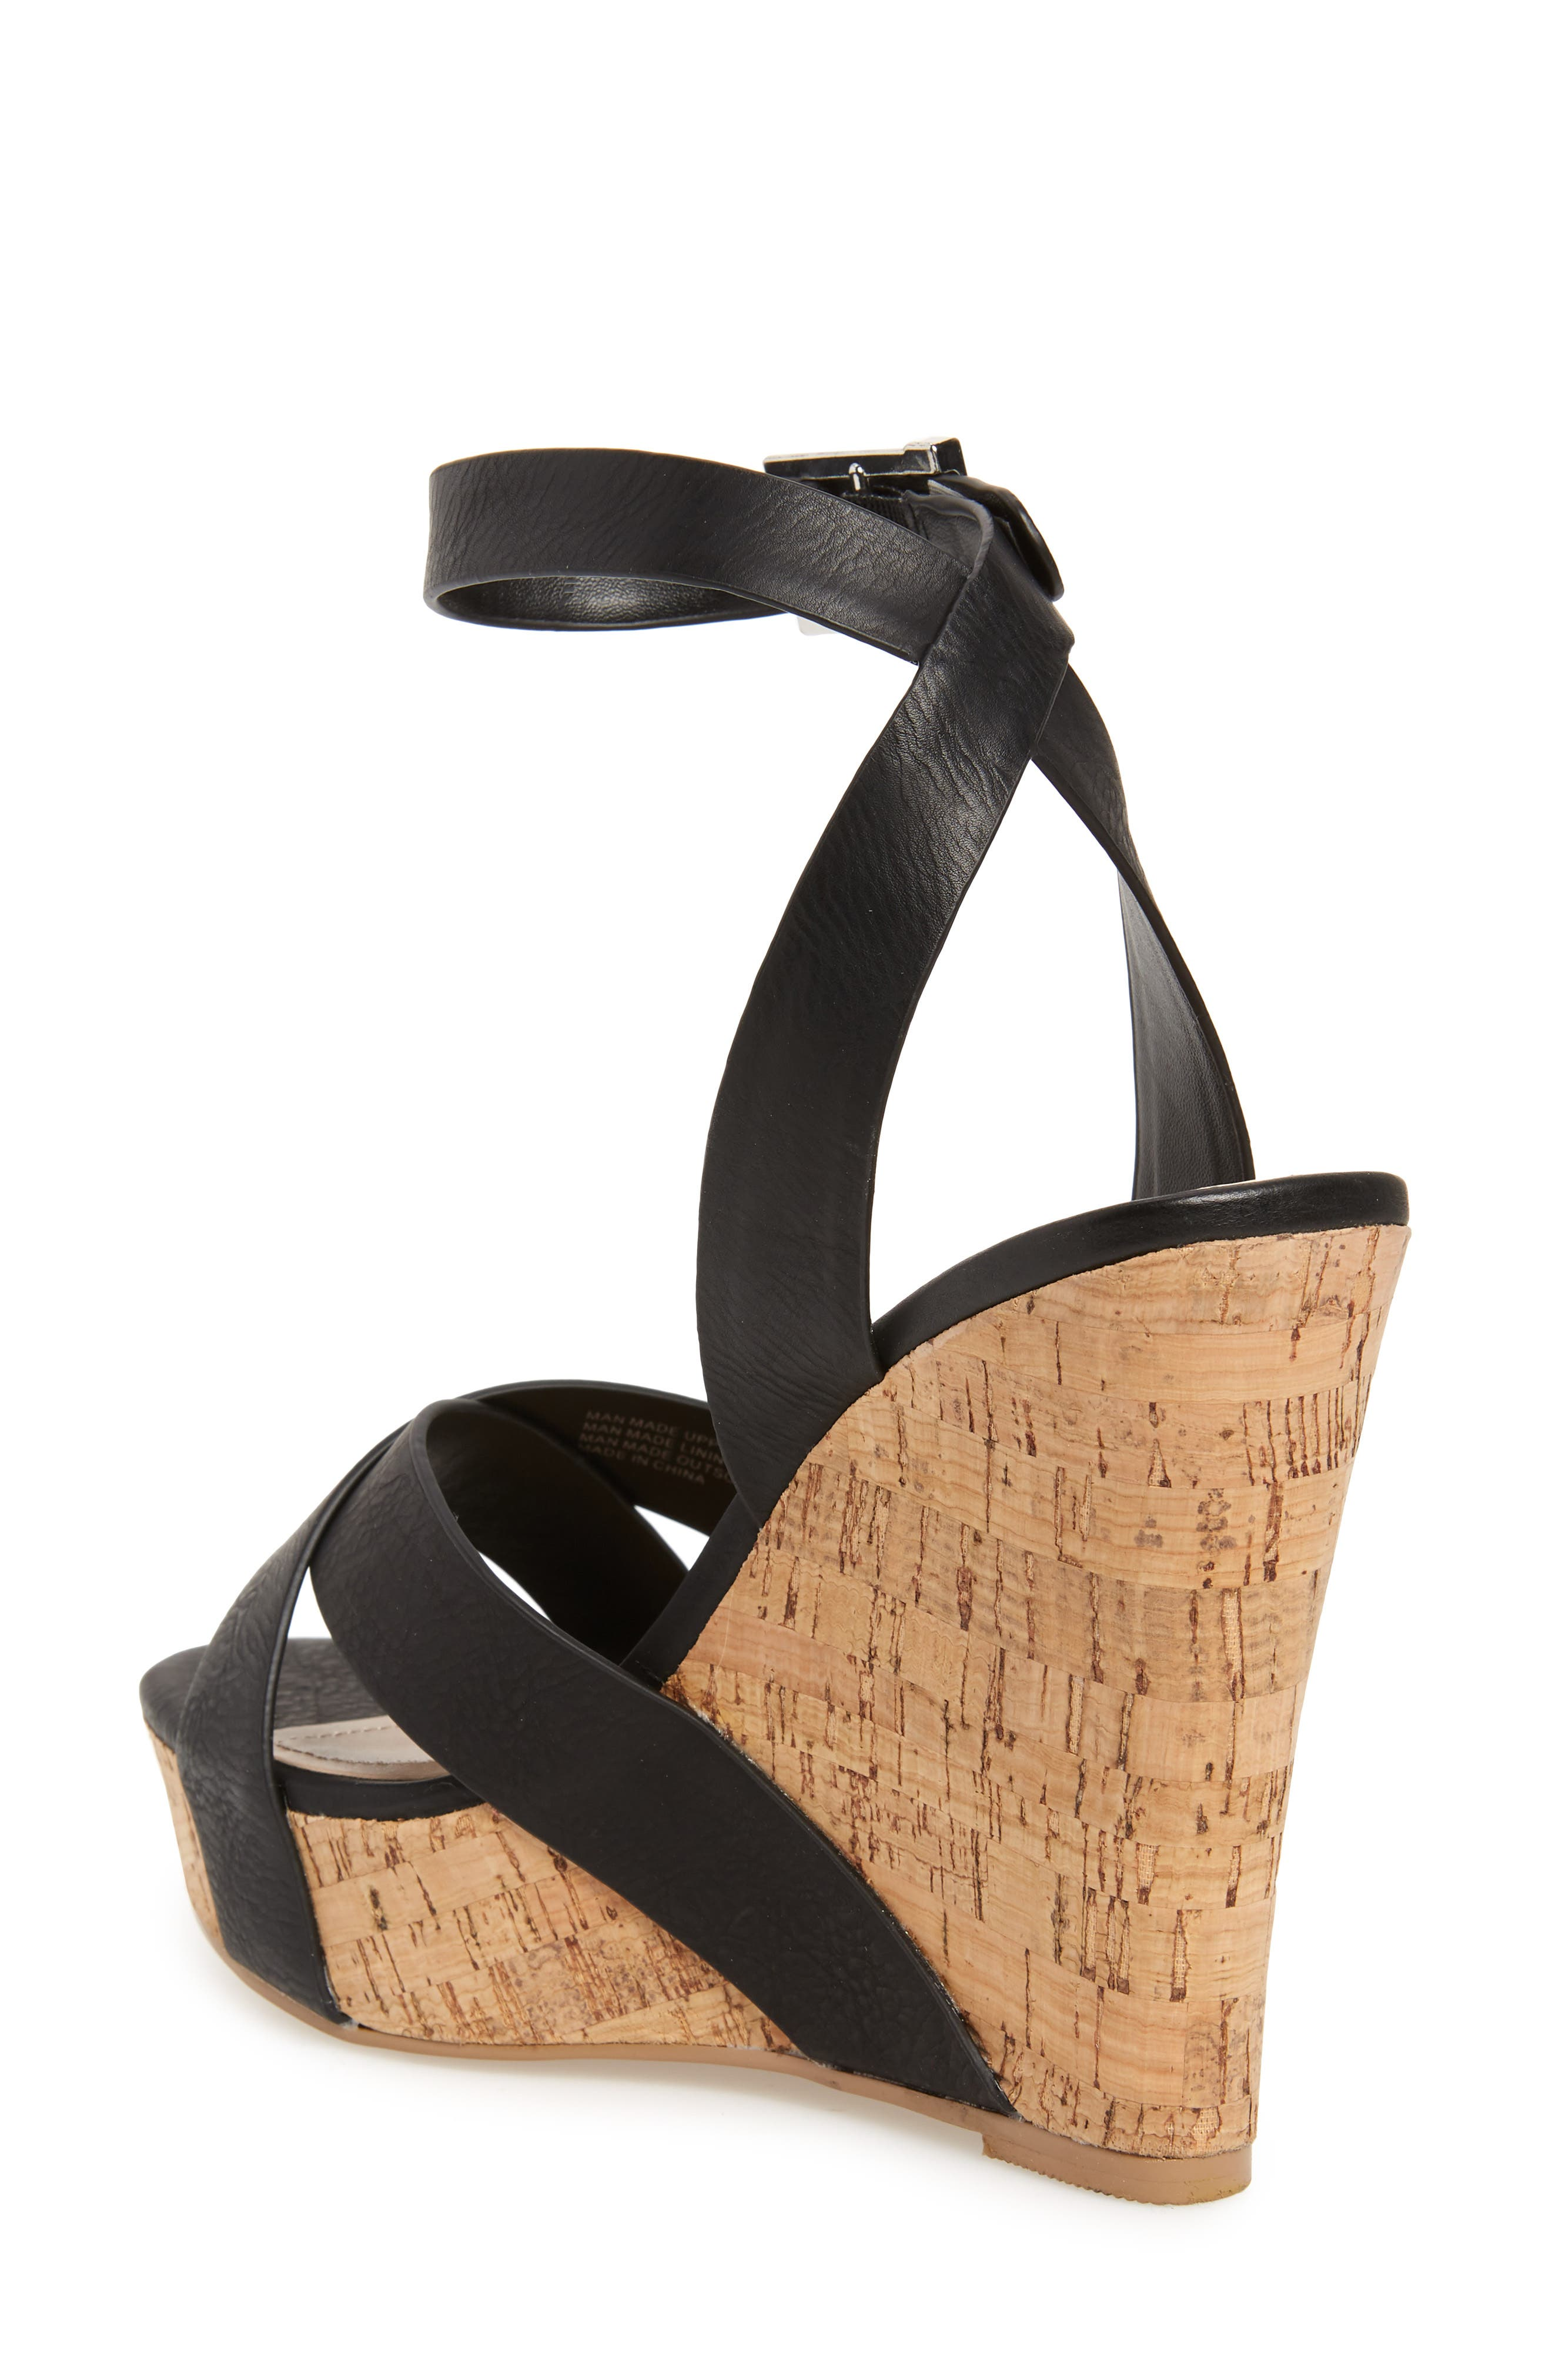 CHARLES BY CHARLES DAVID, Aleck Platform Wedge Sandal, Alternate thumbnail 2, color, BLACK FAUX LEATHER